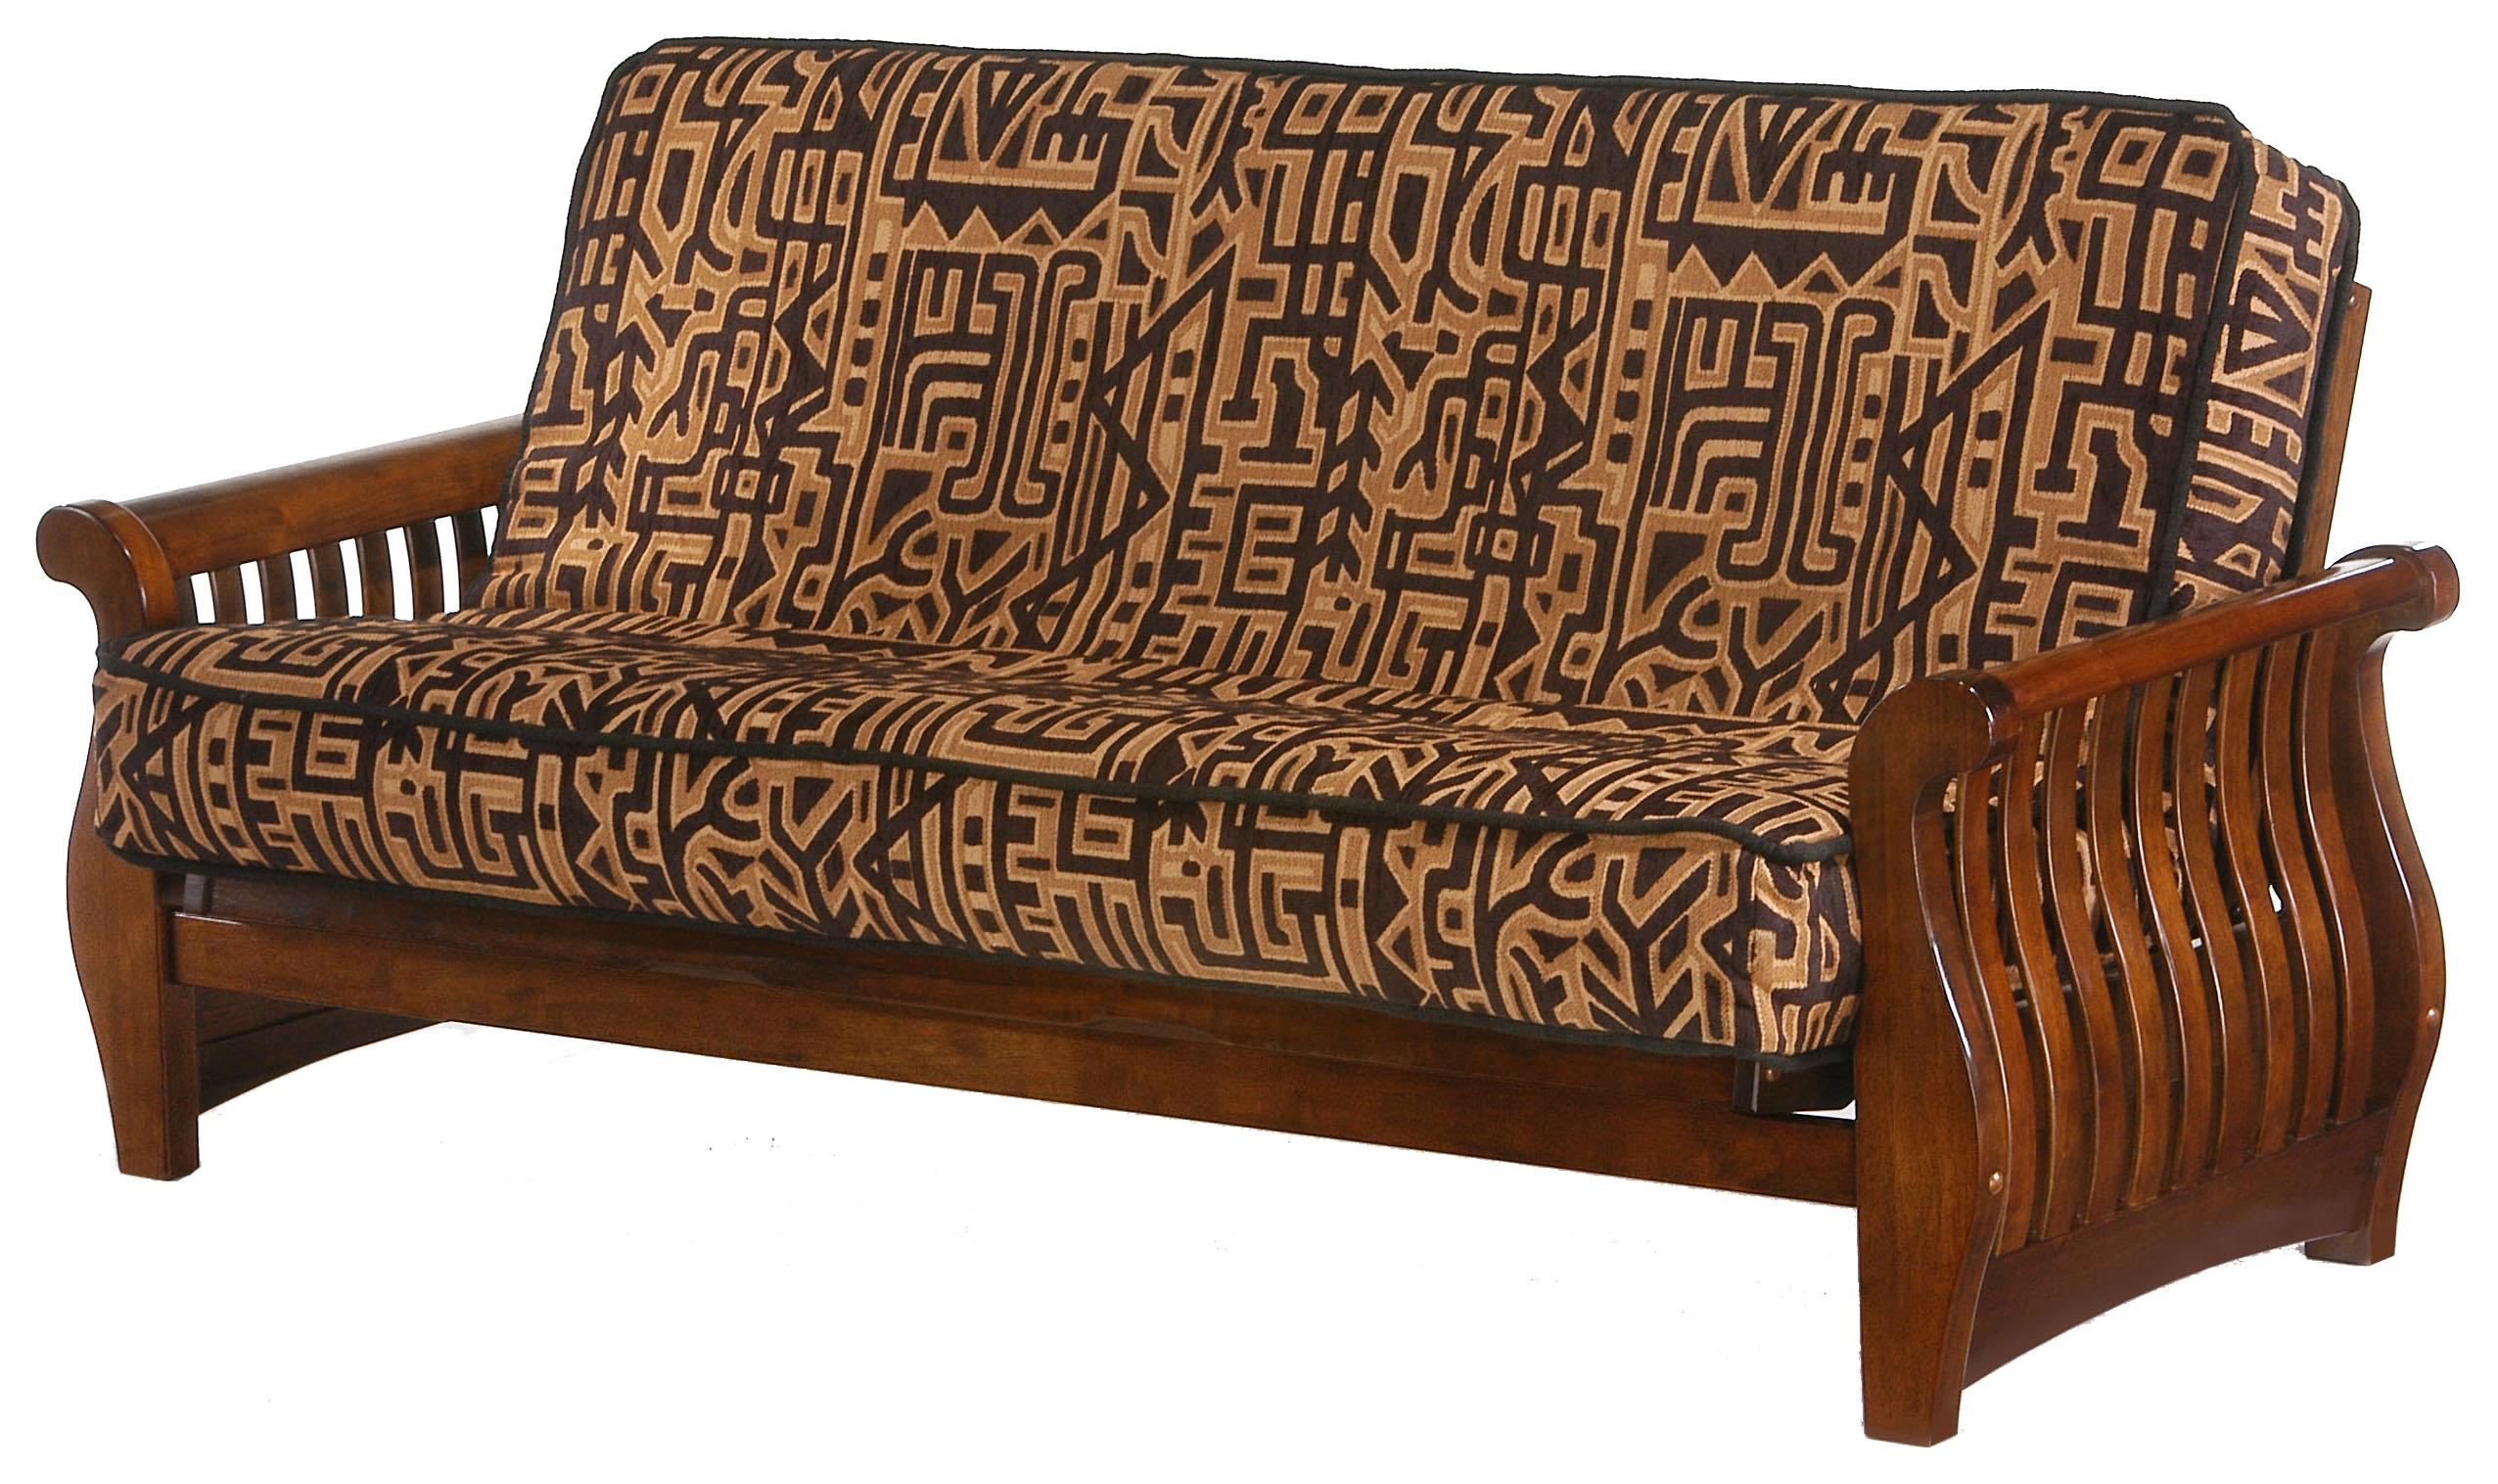 Nightfall Black Walnut Chair Size Futon by Night & Day Furniture at Furniture and ApplianceMart